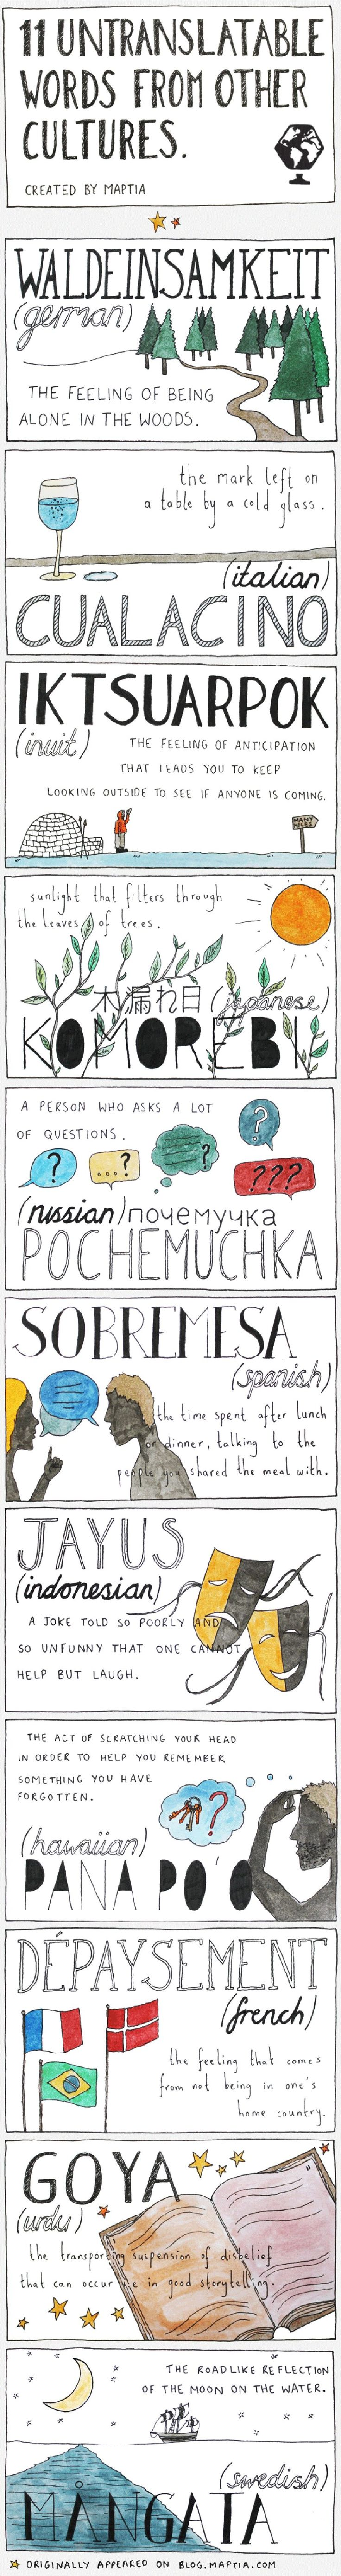 Untranslatable words infographic-handdrawn